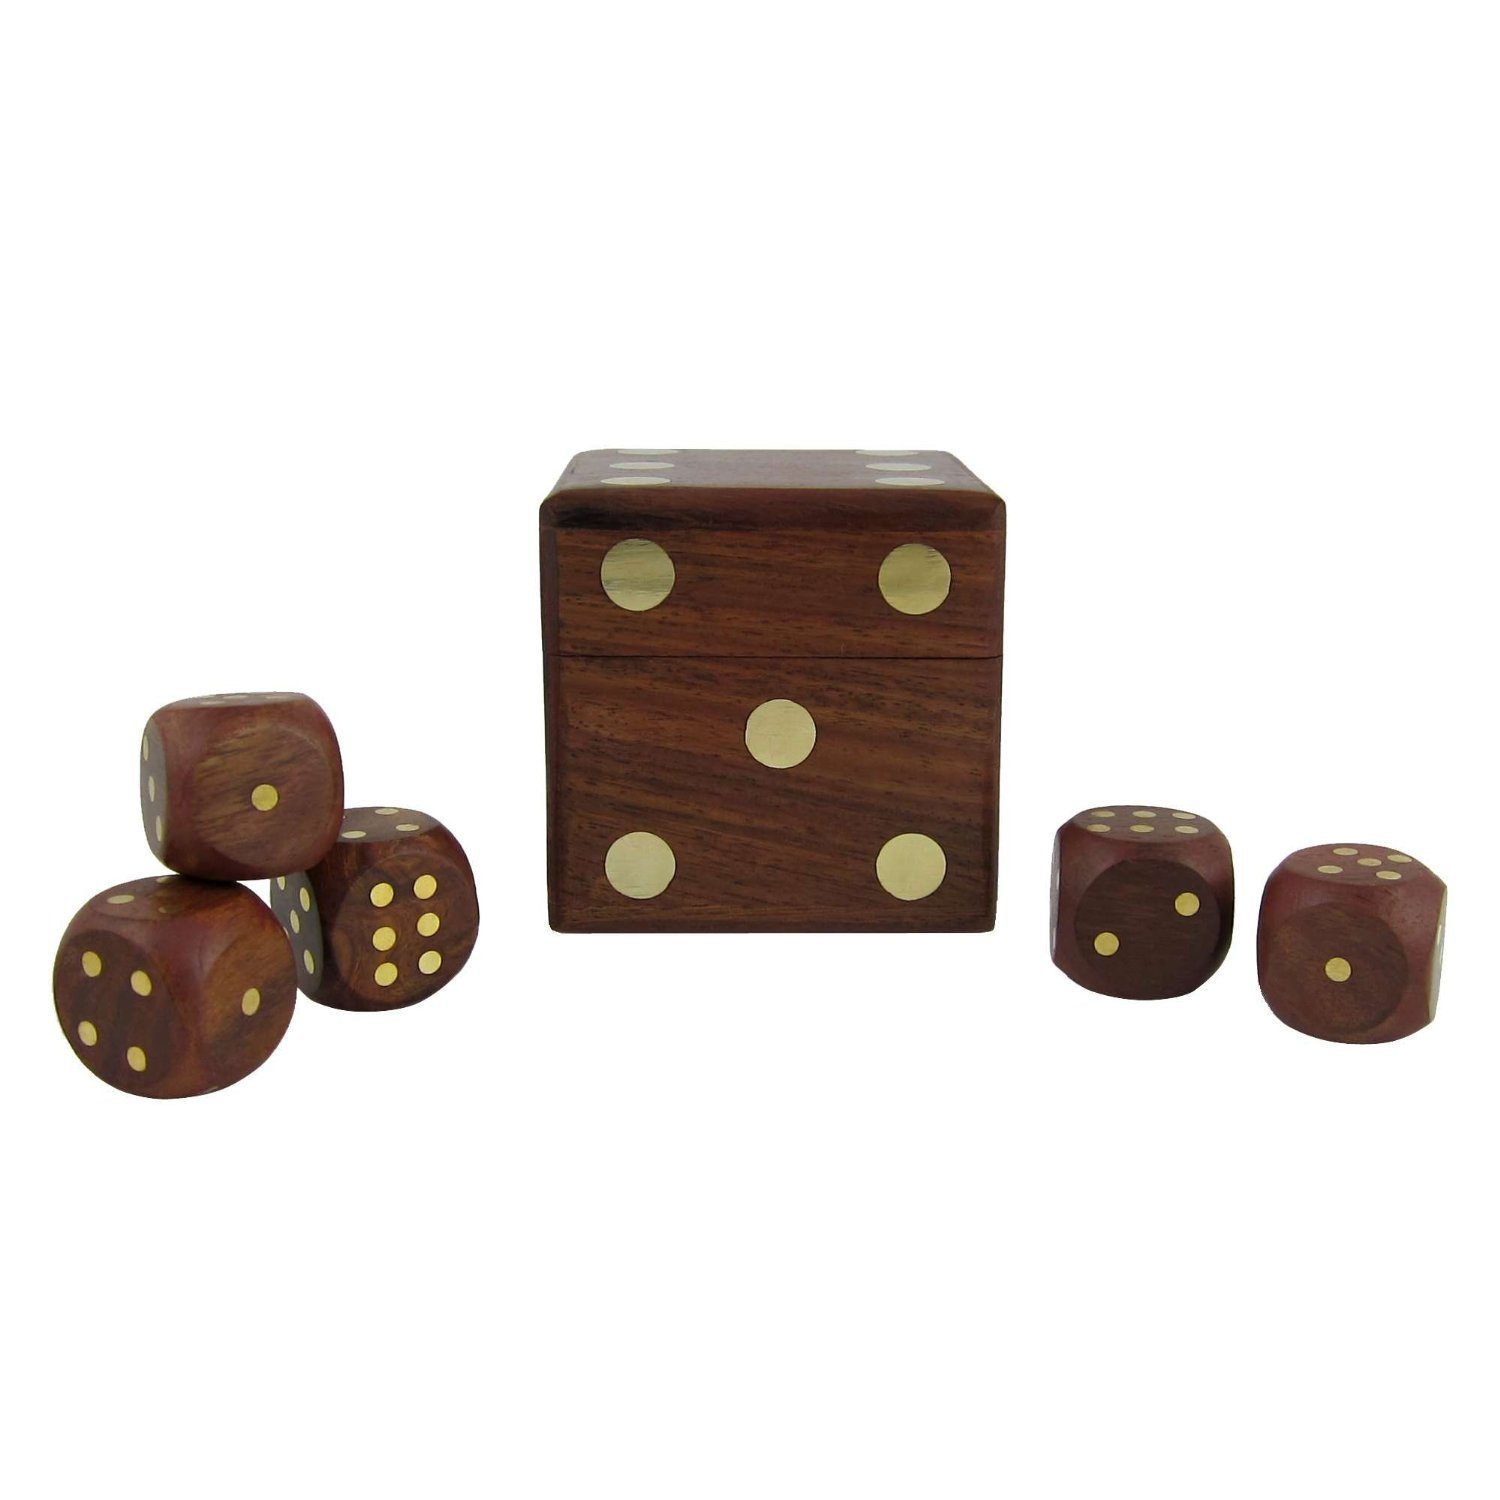 Wooden Dice Shape Dice Holder and Dice Games of Five Dices, Set of 12 - Christmas Thanksgiving Gifts for Kids & Adults